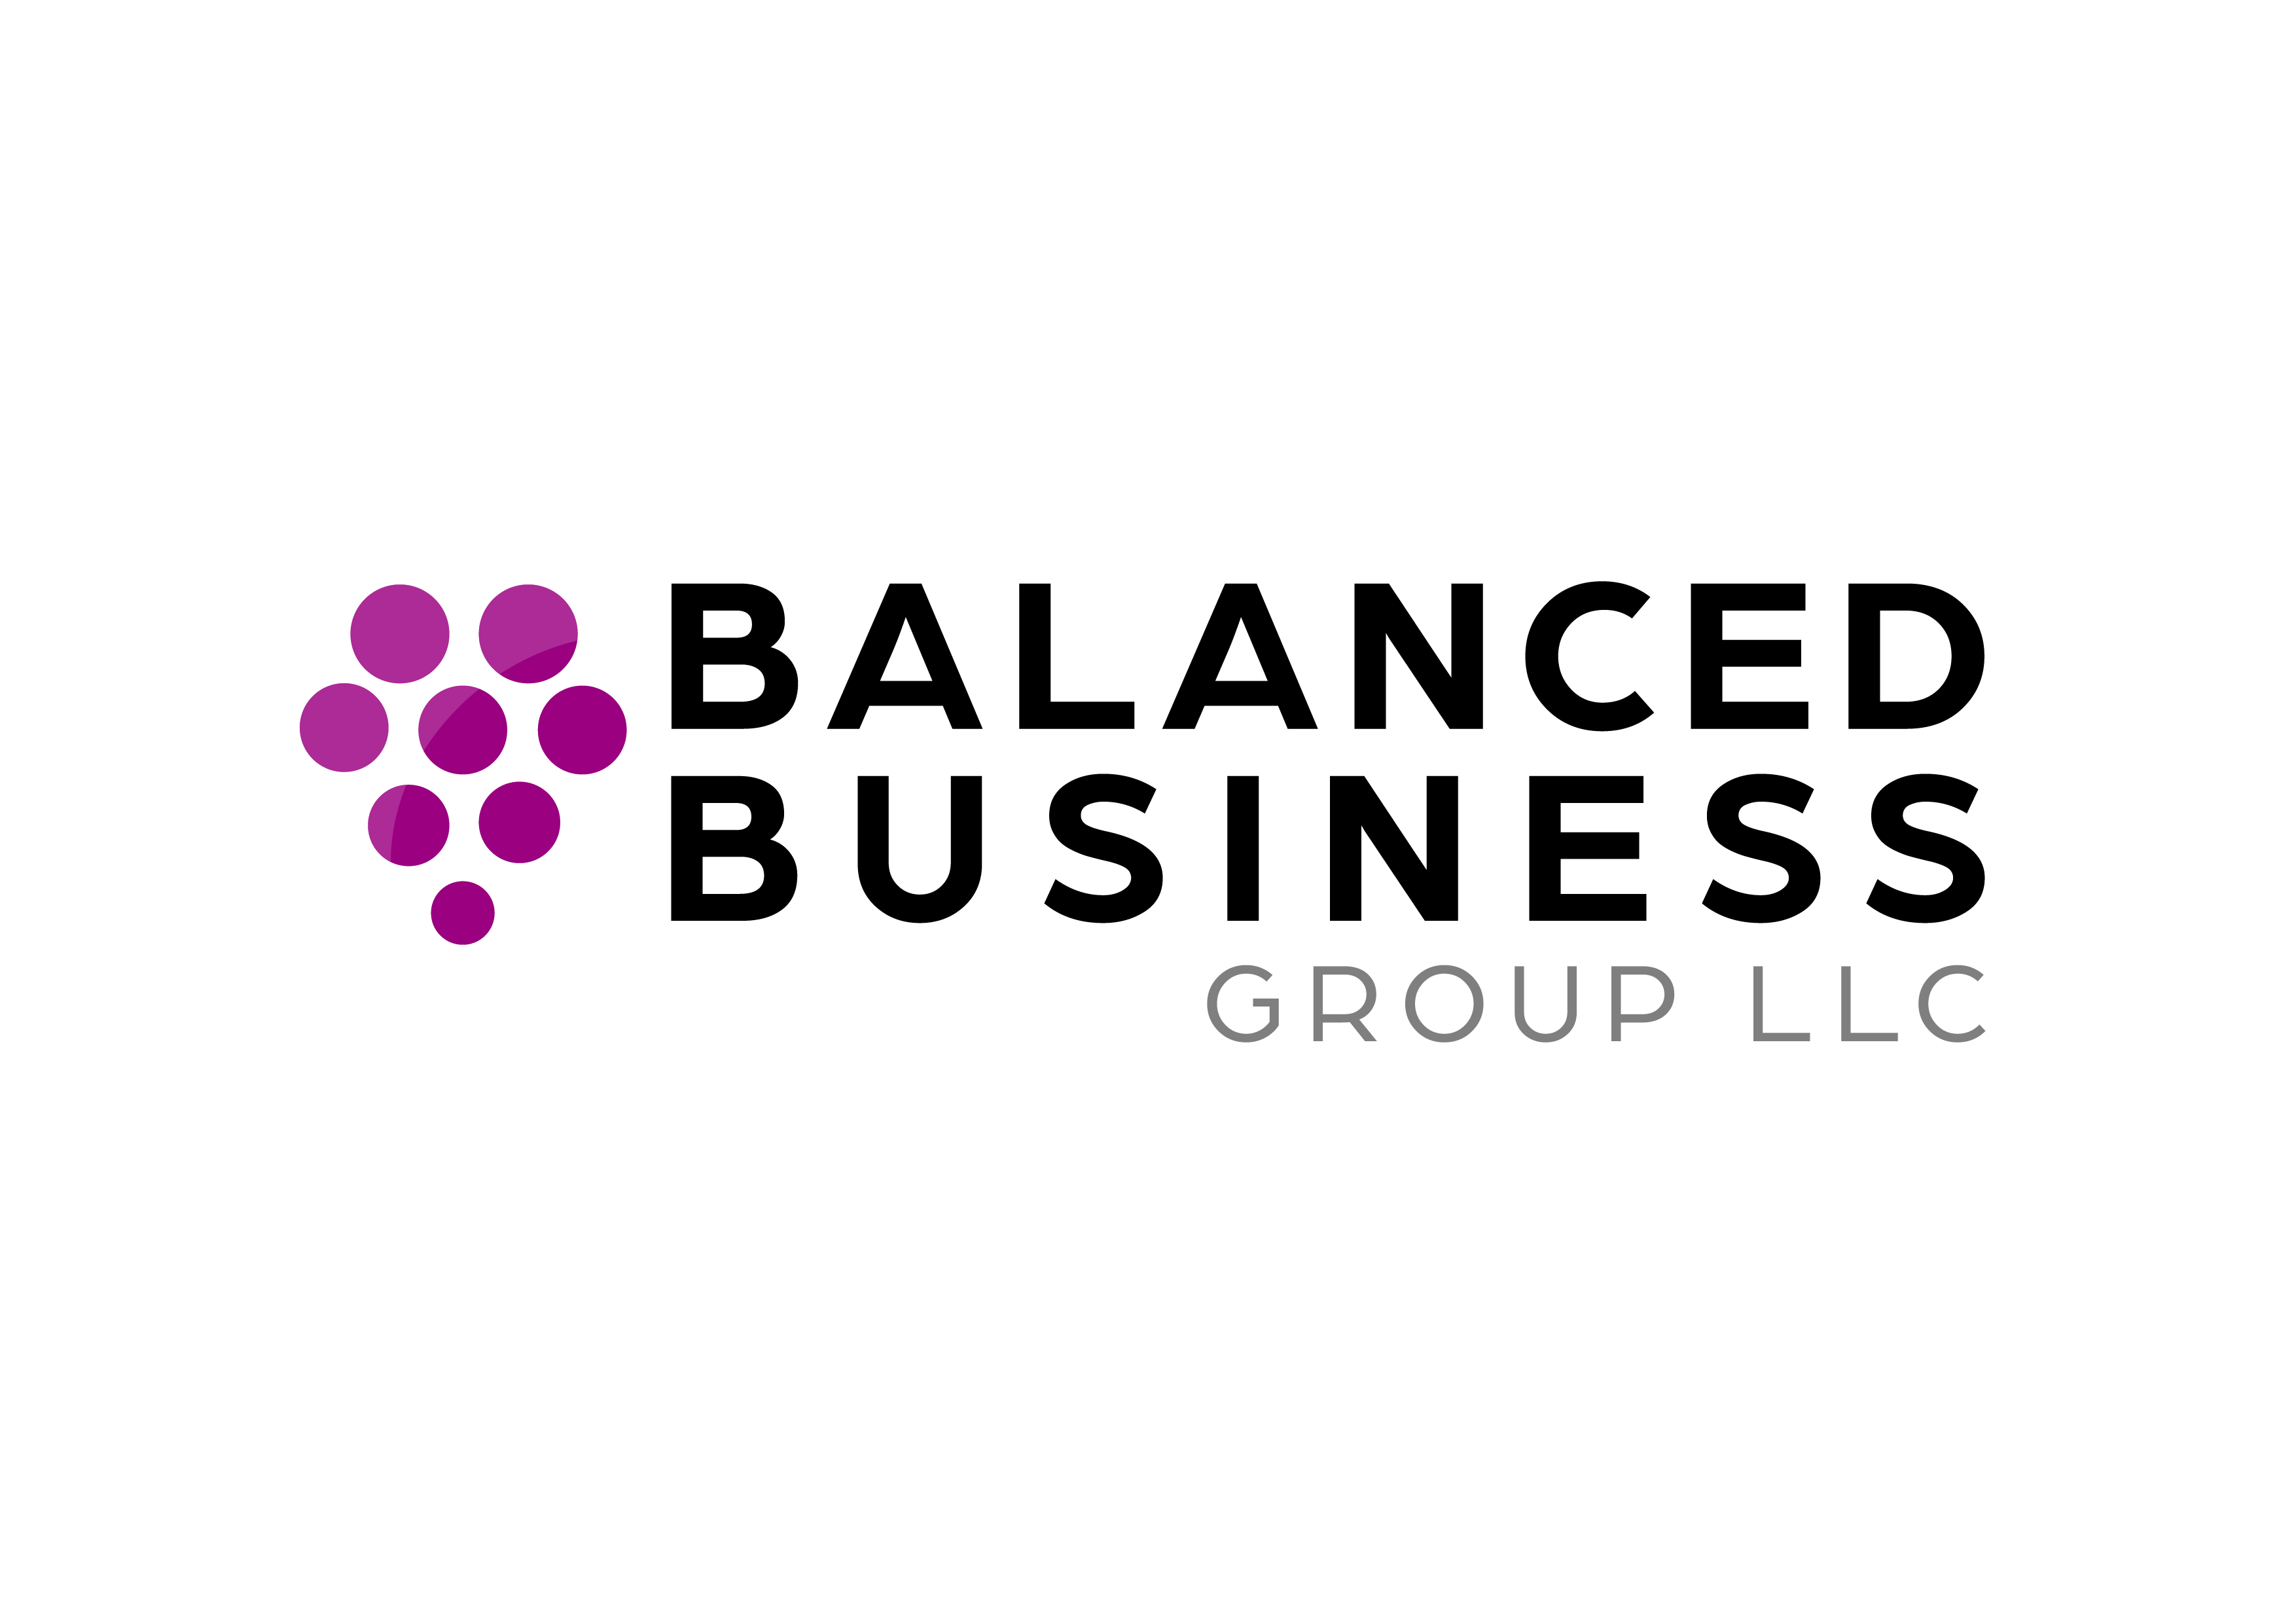 Balanced Business group